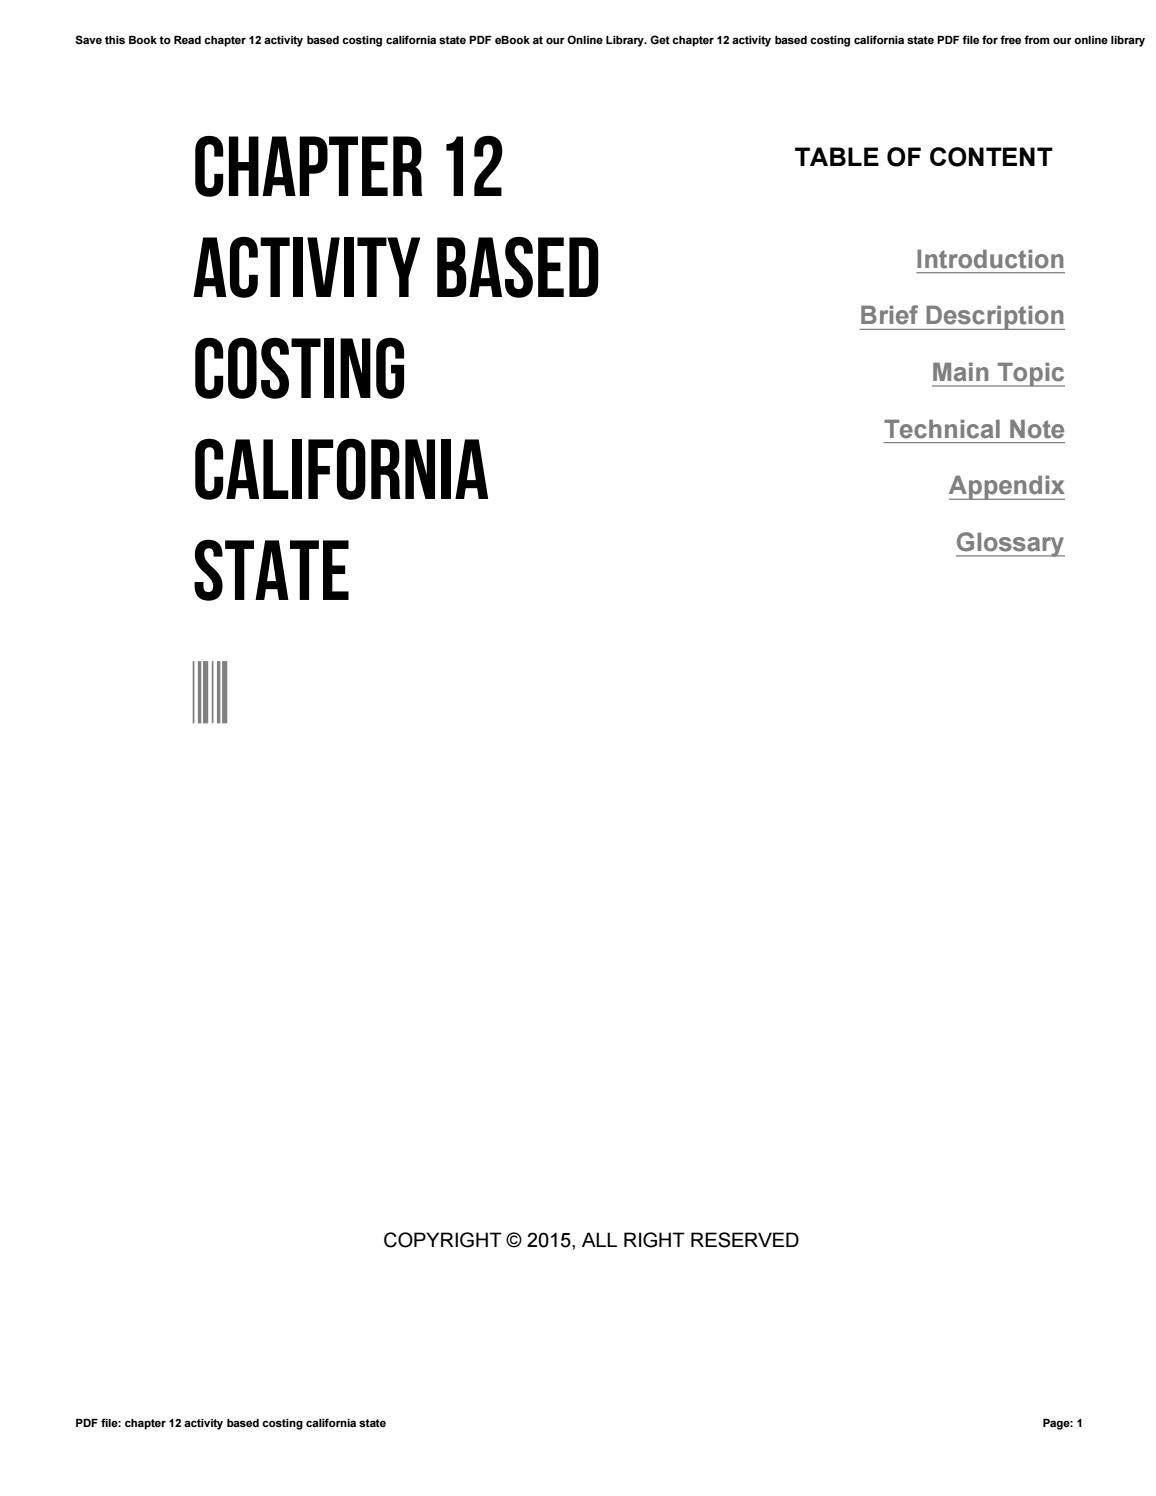 introduction to activity based costing